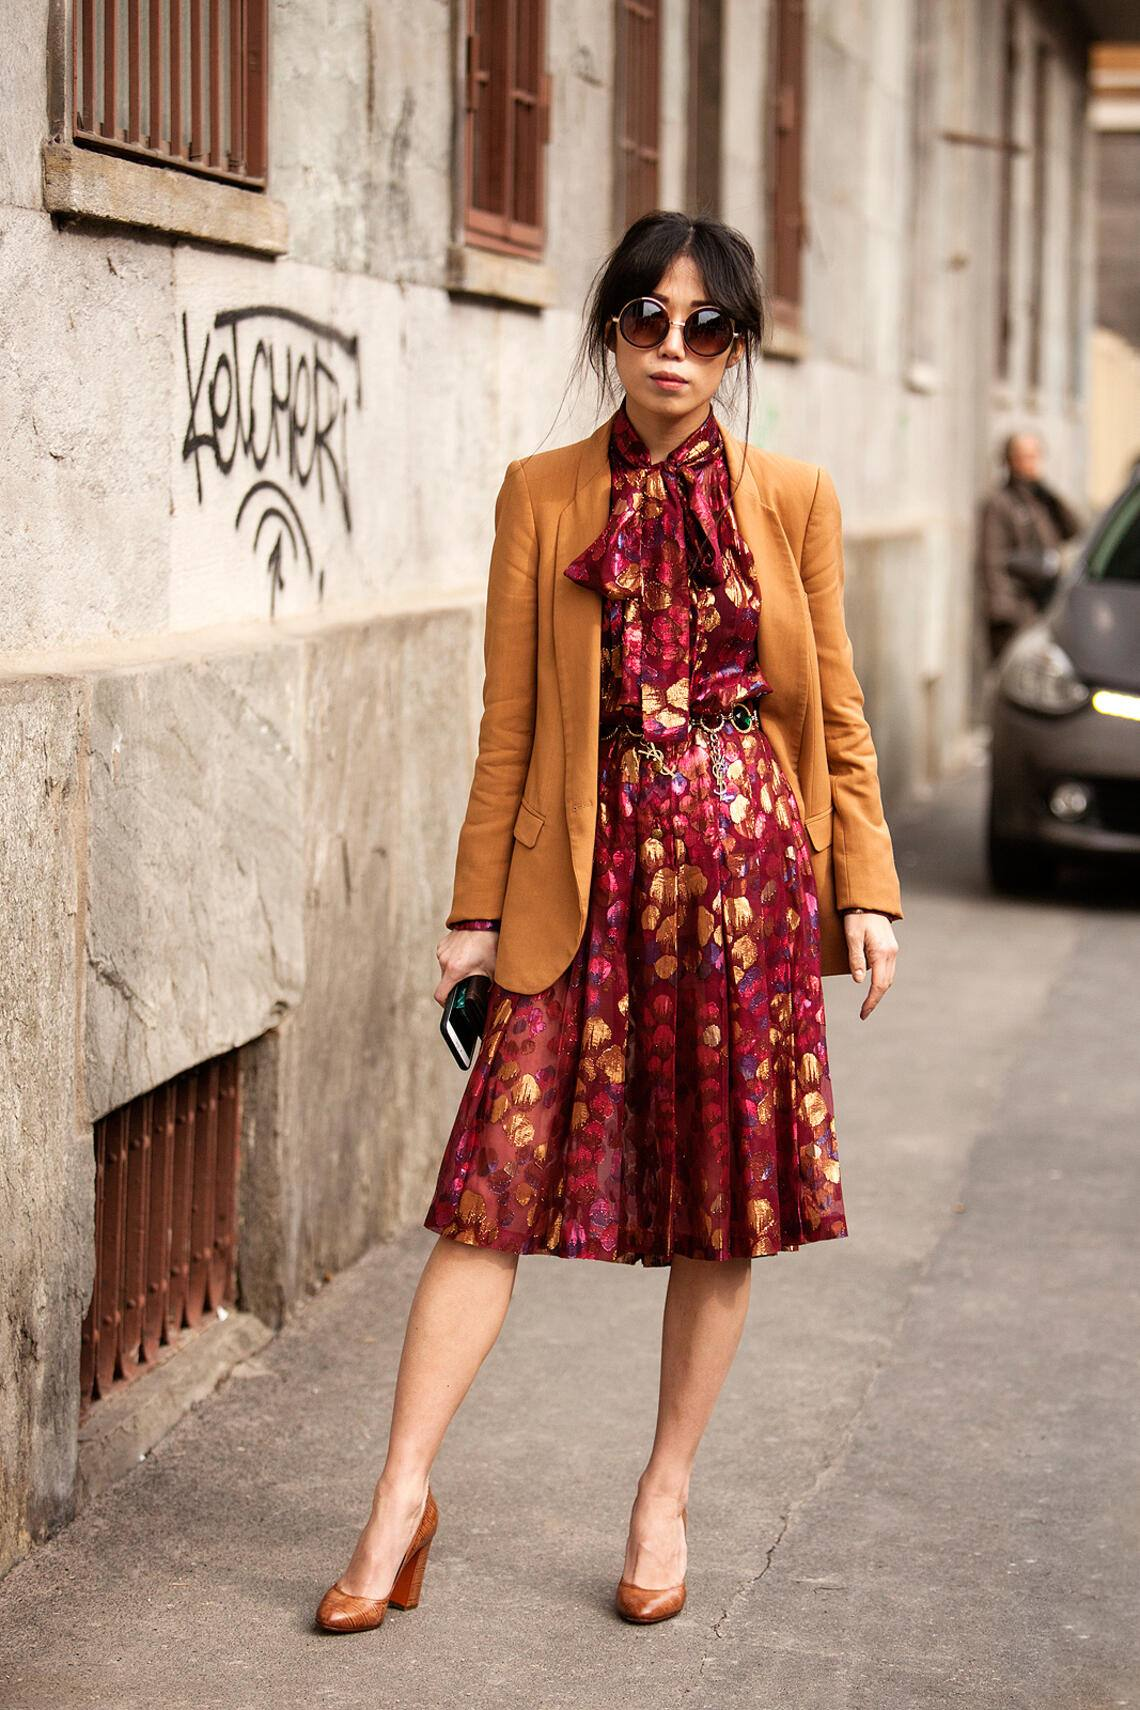 Floral Street Style